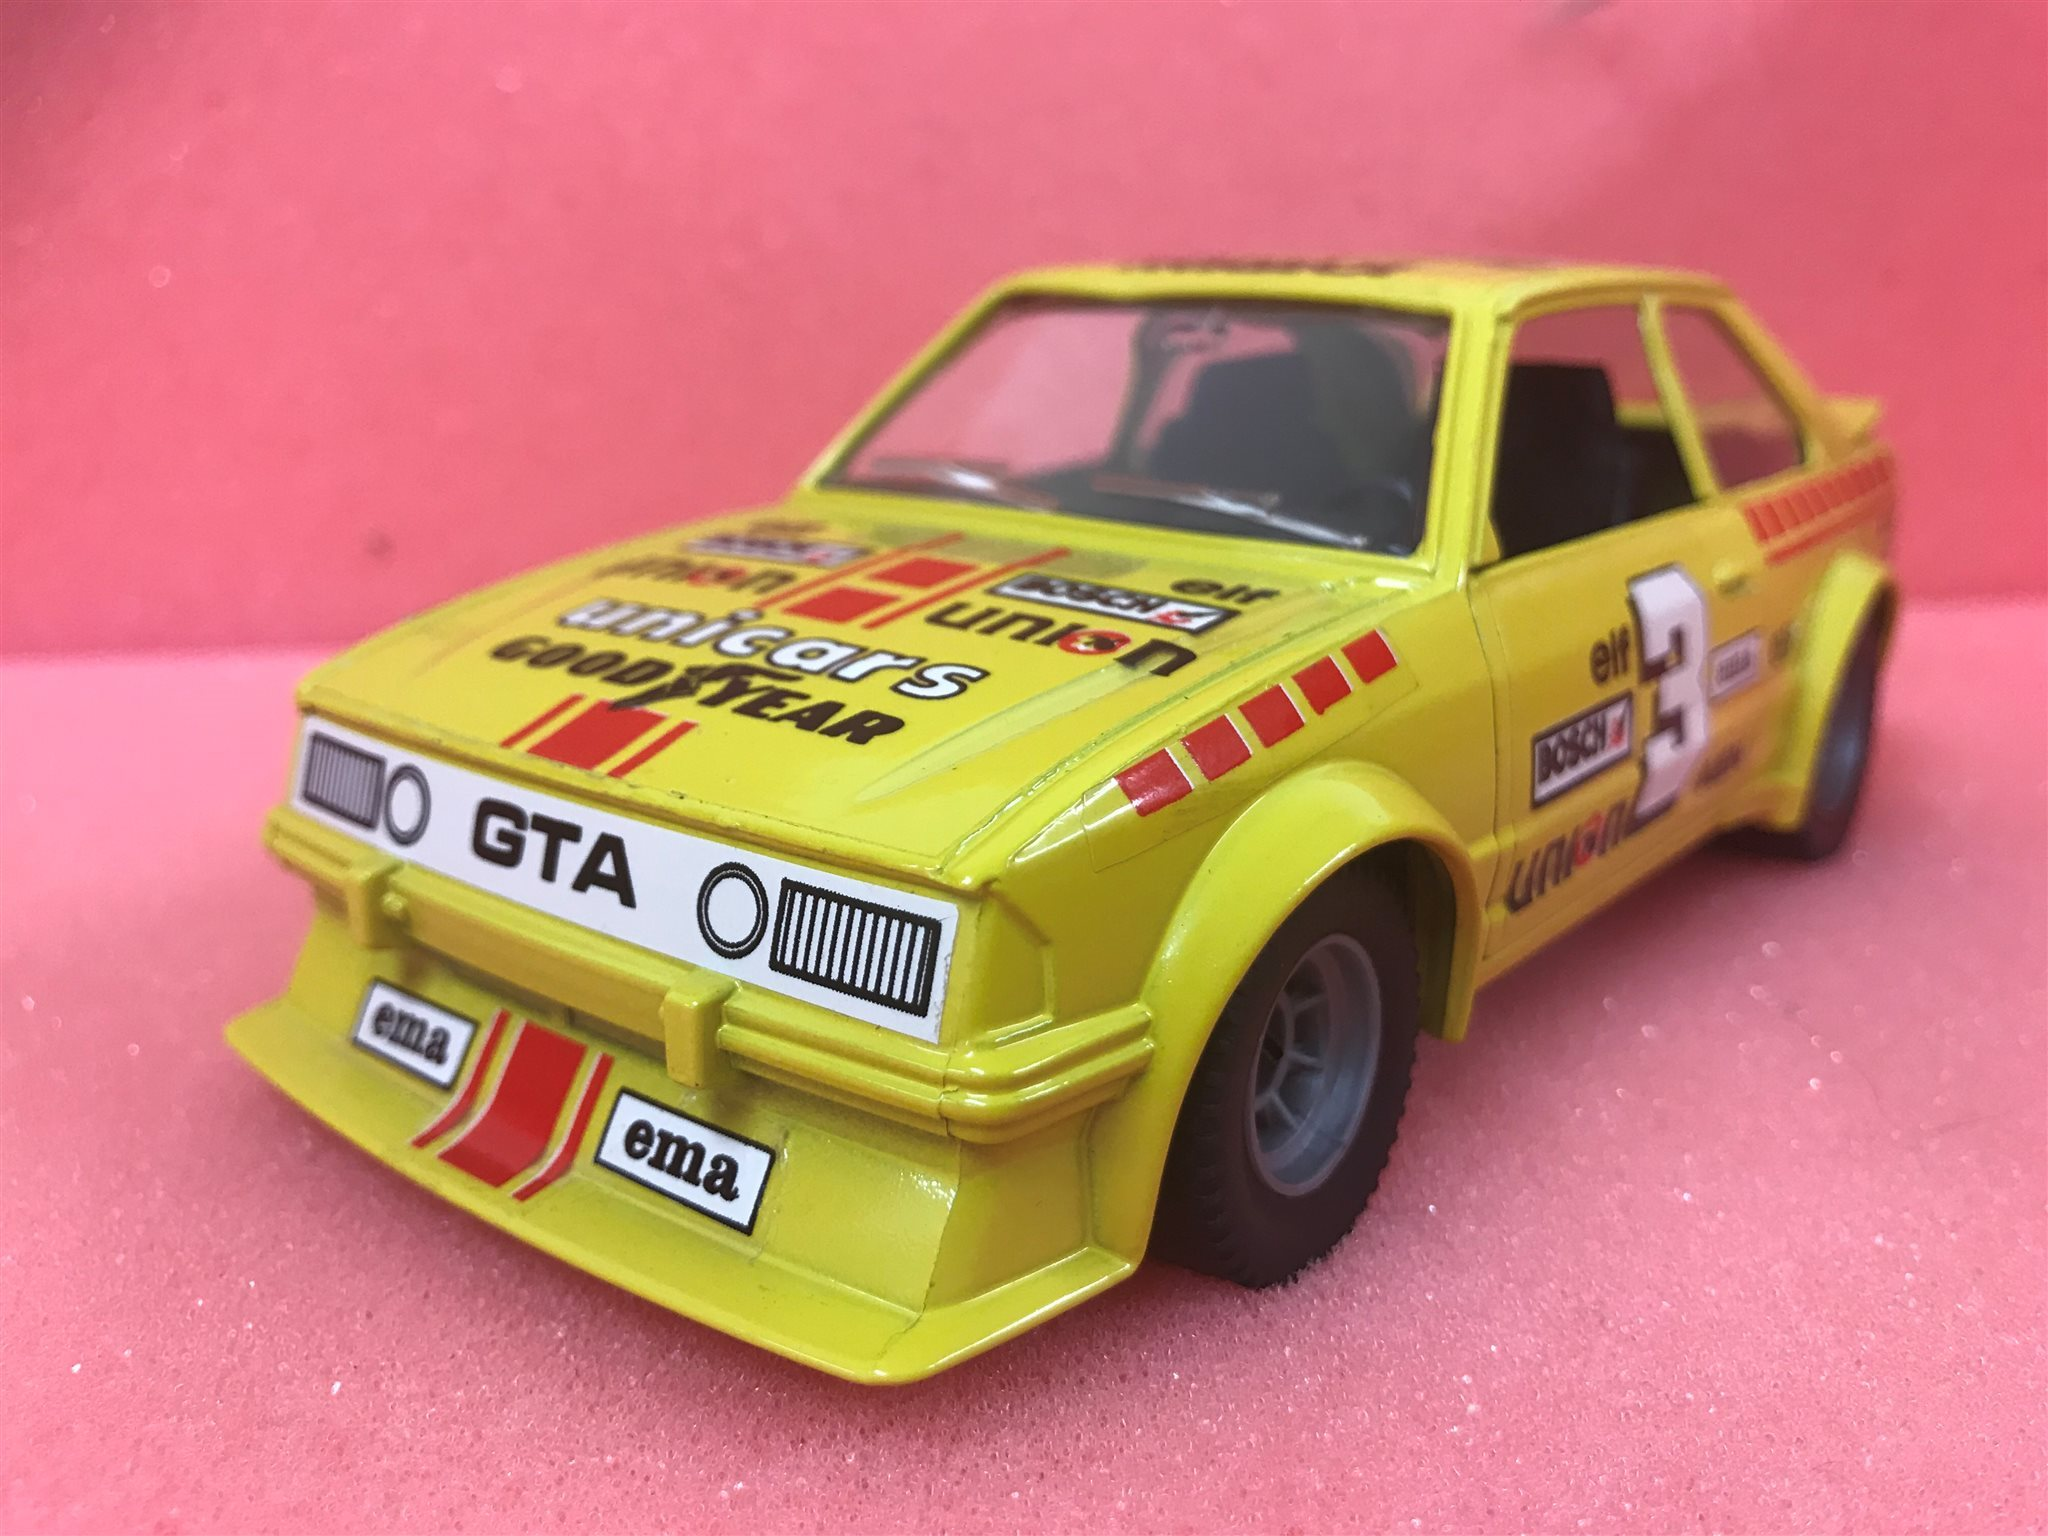 Ford Escort Xr3 Gul Skala 1/23